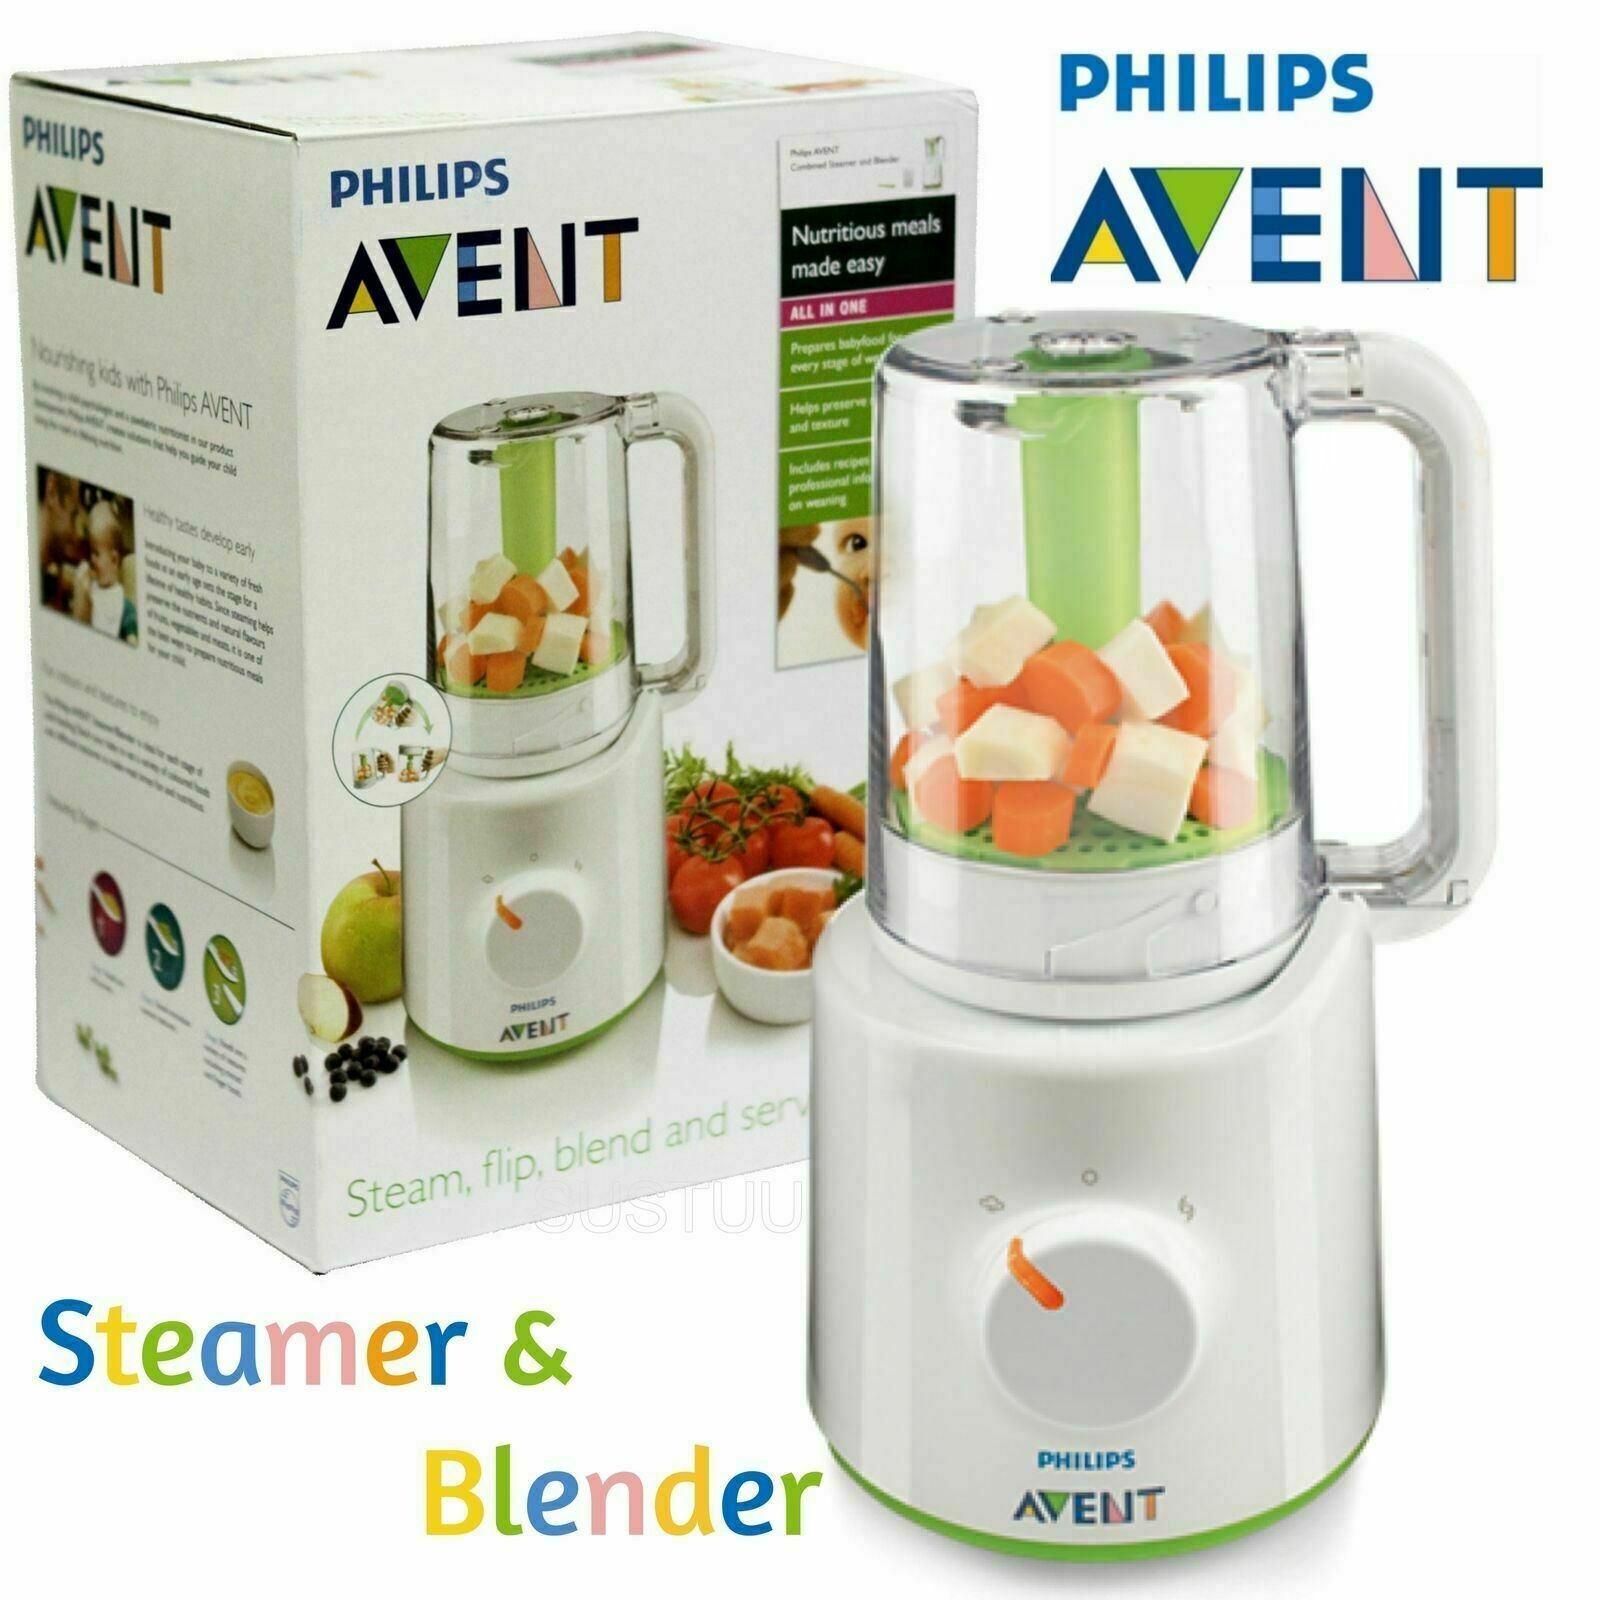 Philips Avent SCF870 Combined Baby Food Juice Soup Maker Master Steamer & Blender 220V Wasabi BPA FREE